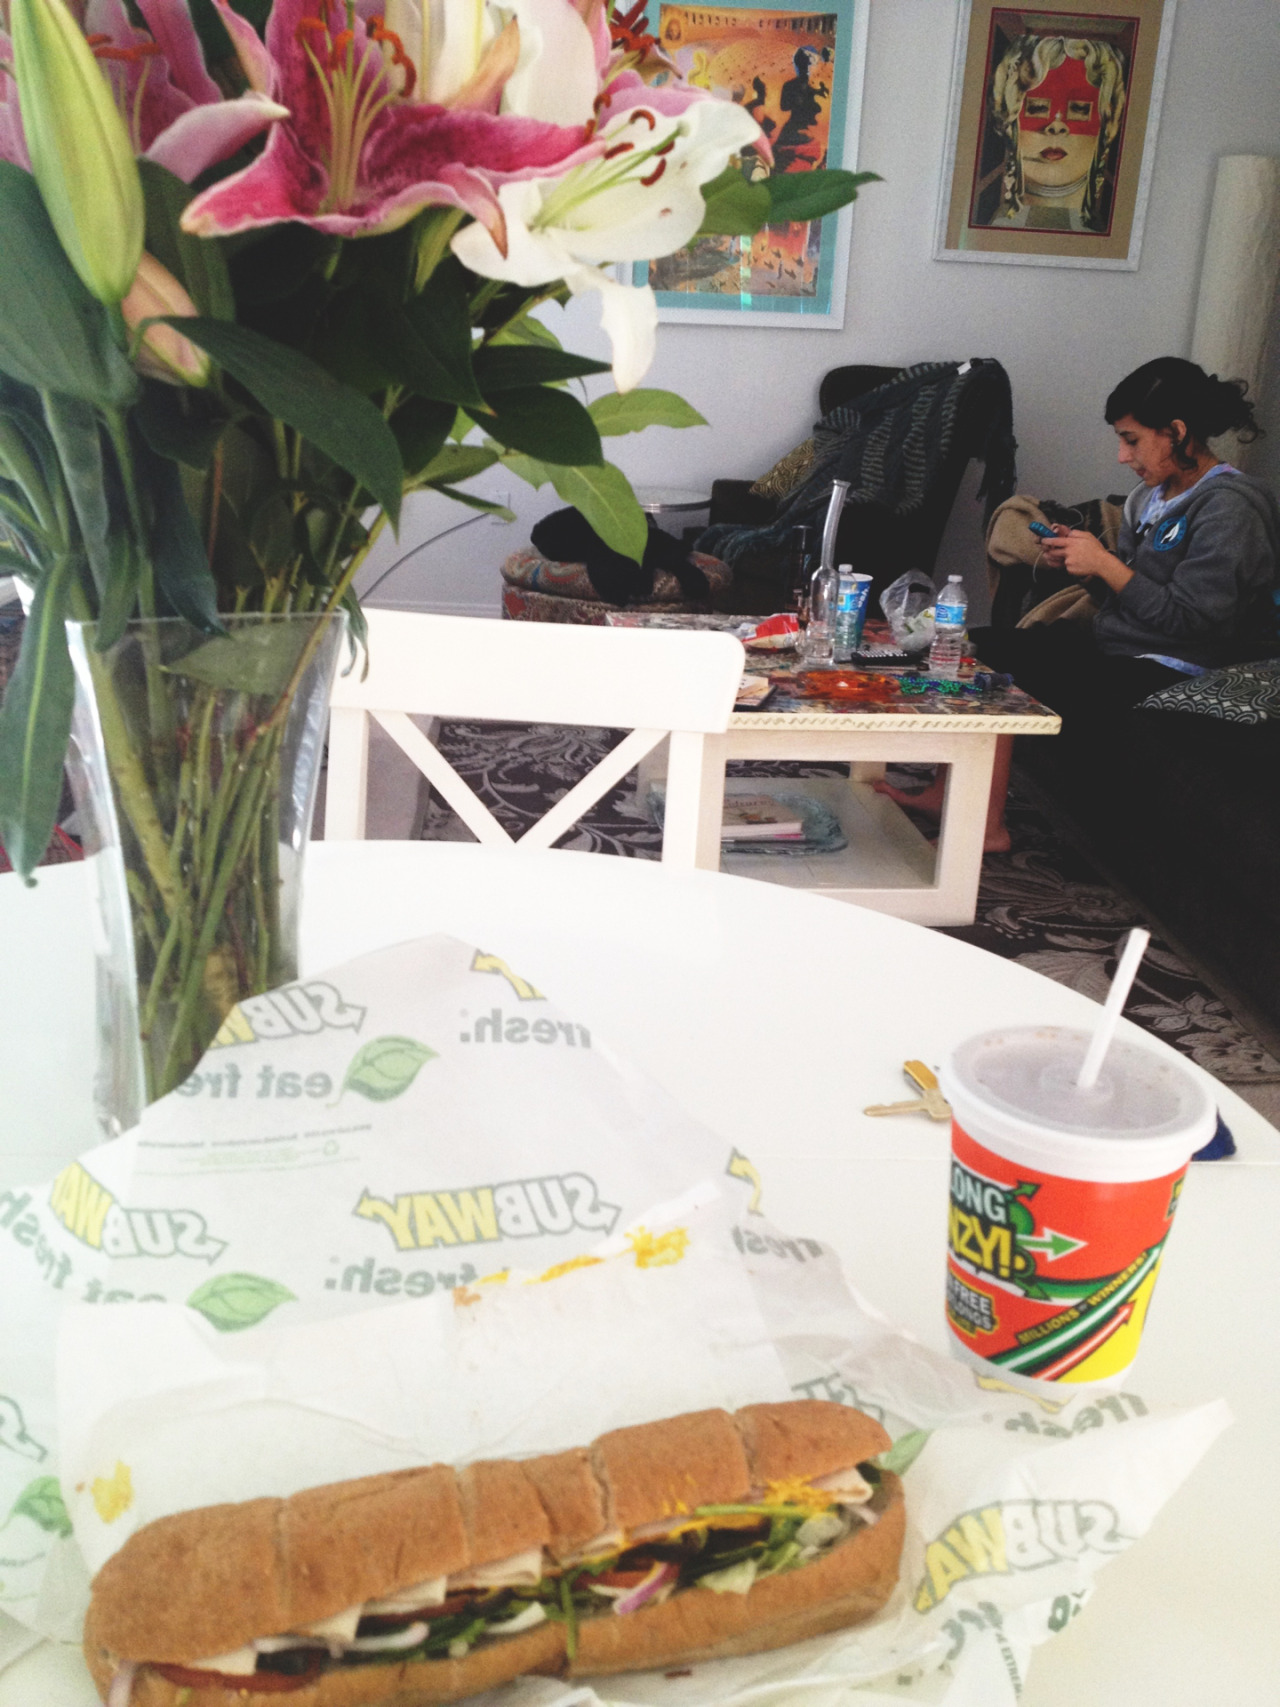 My day: drunk in the afternoon, adventures with the roomie, subway, comedy and good vibes.